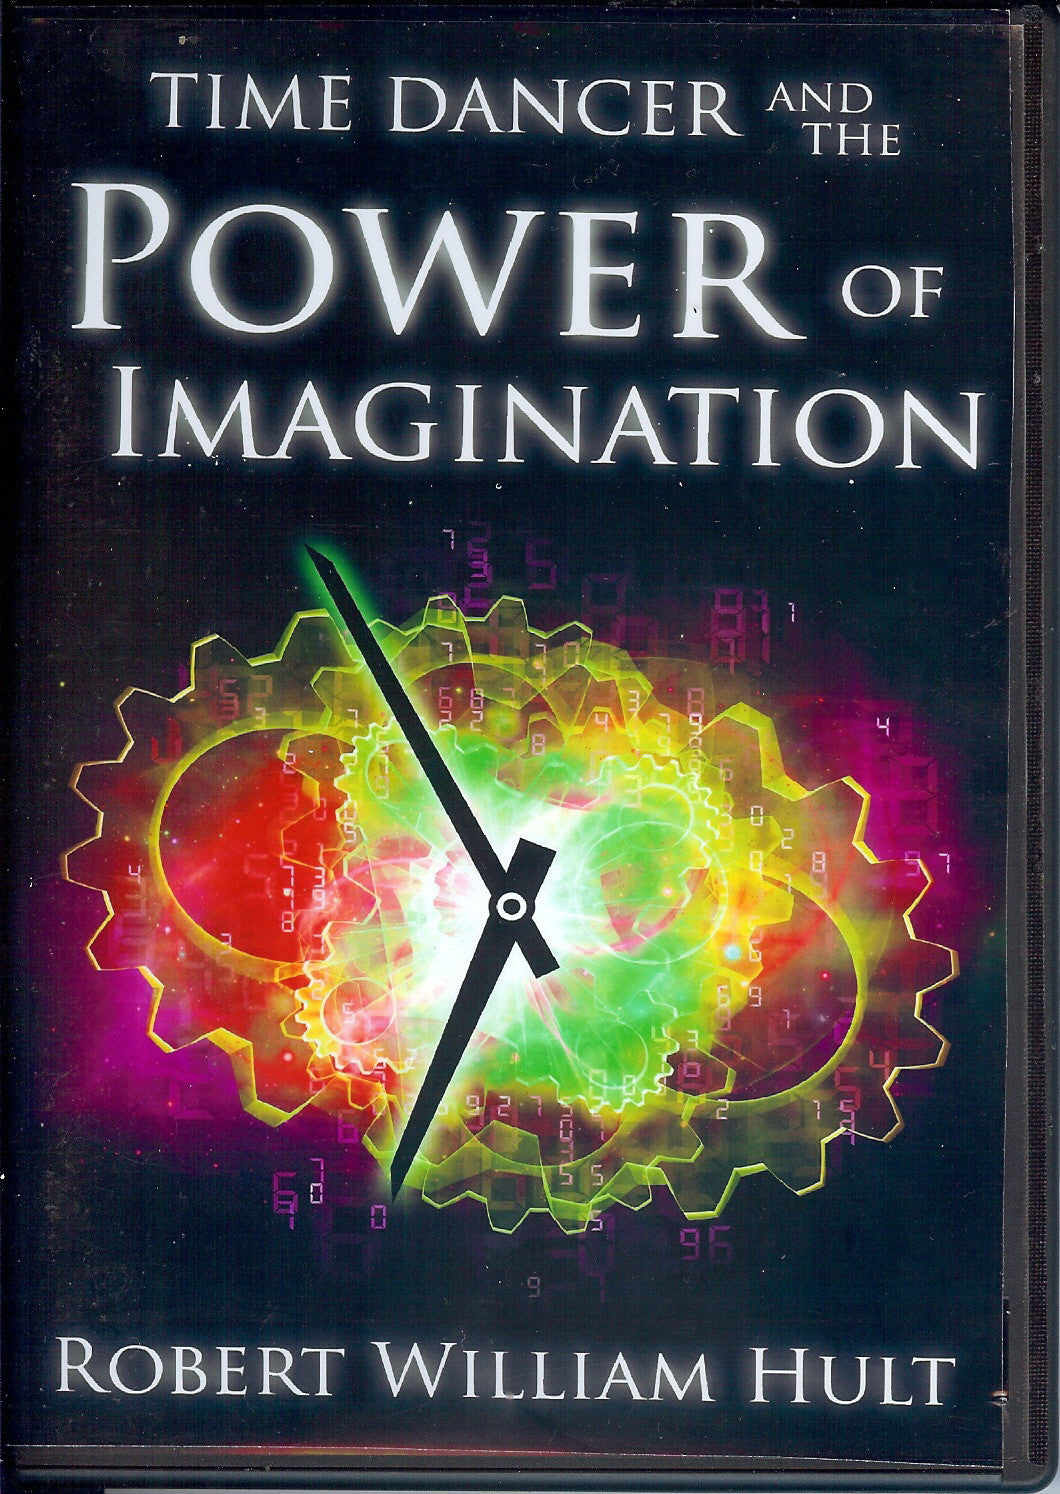 Time Dancer and the Power of Imagination